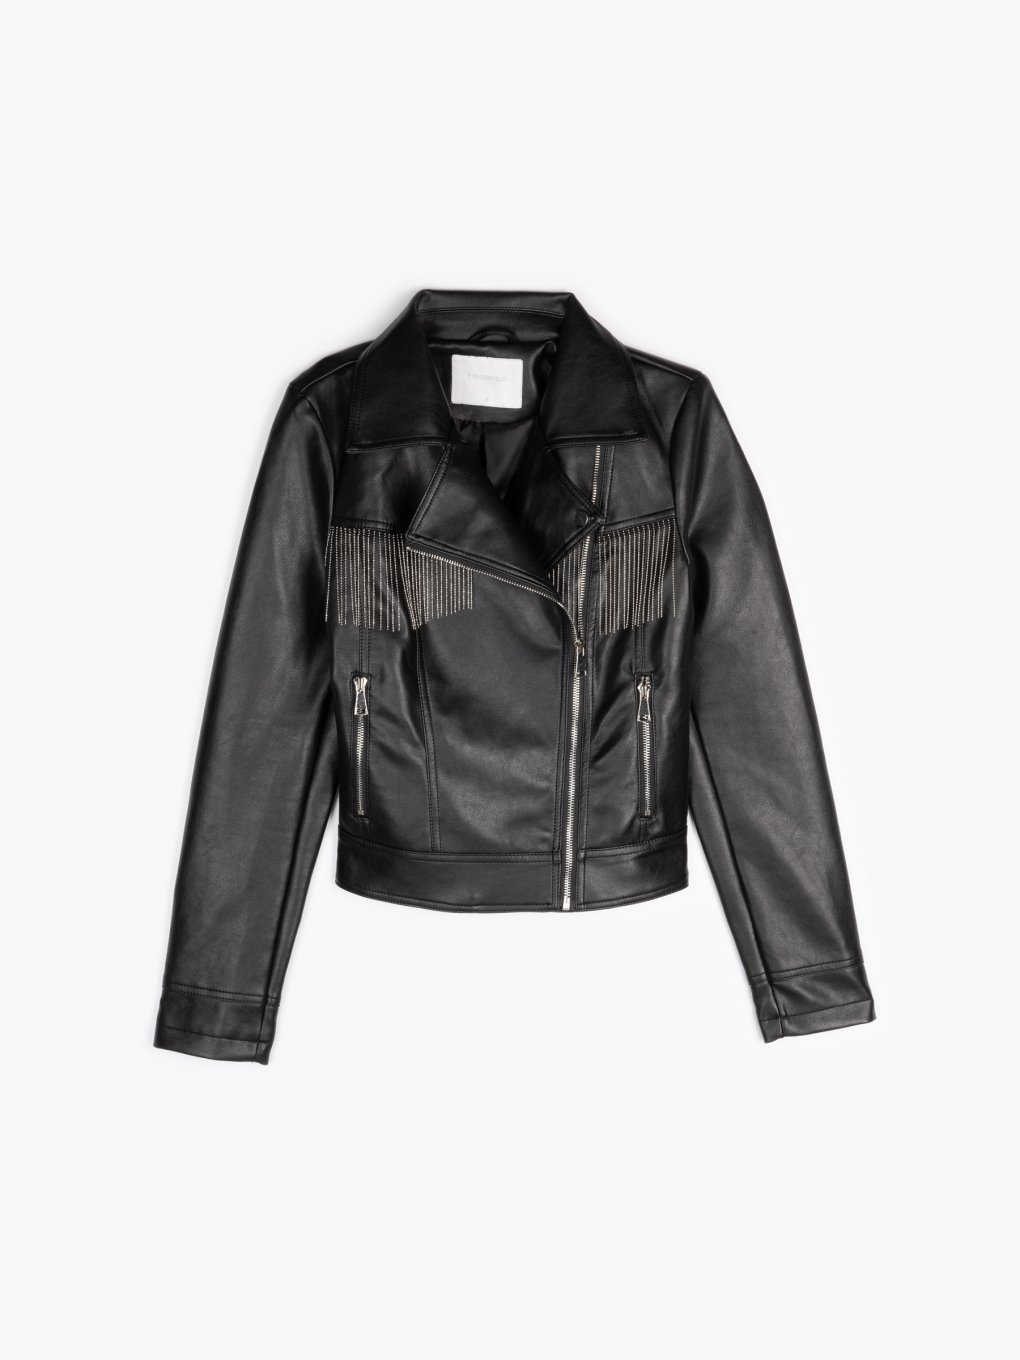 Biker jacket with tassels